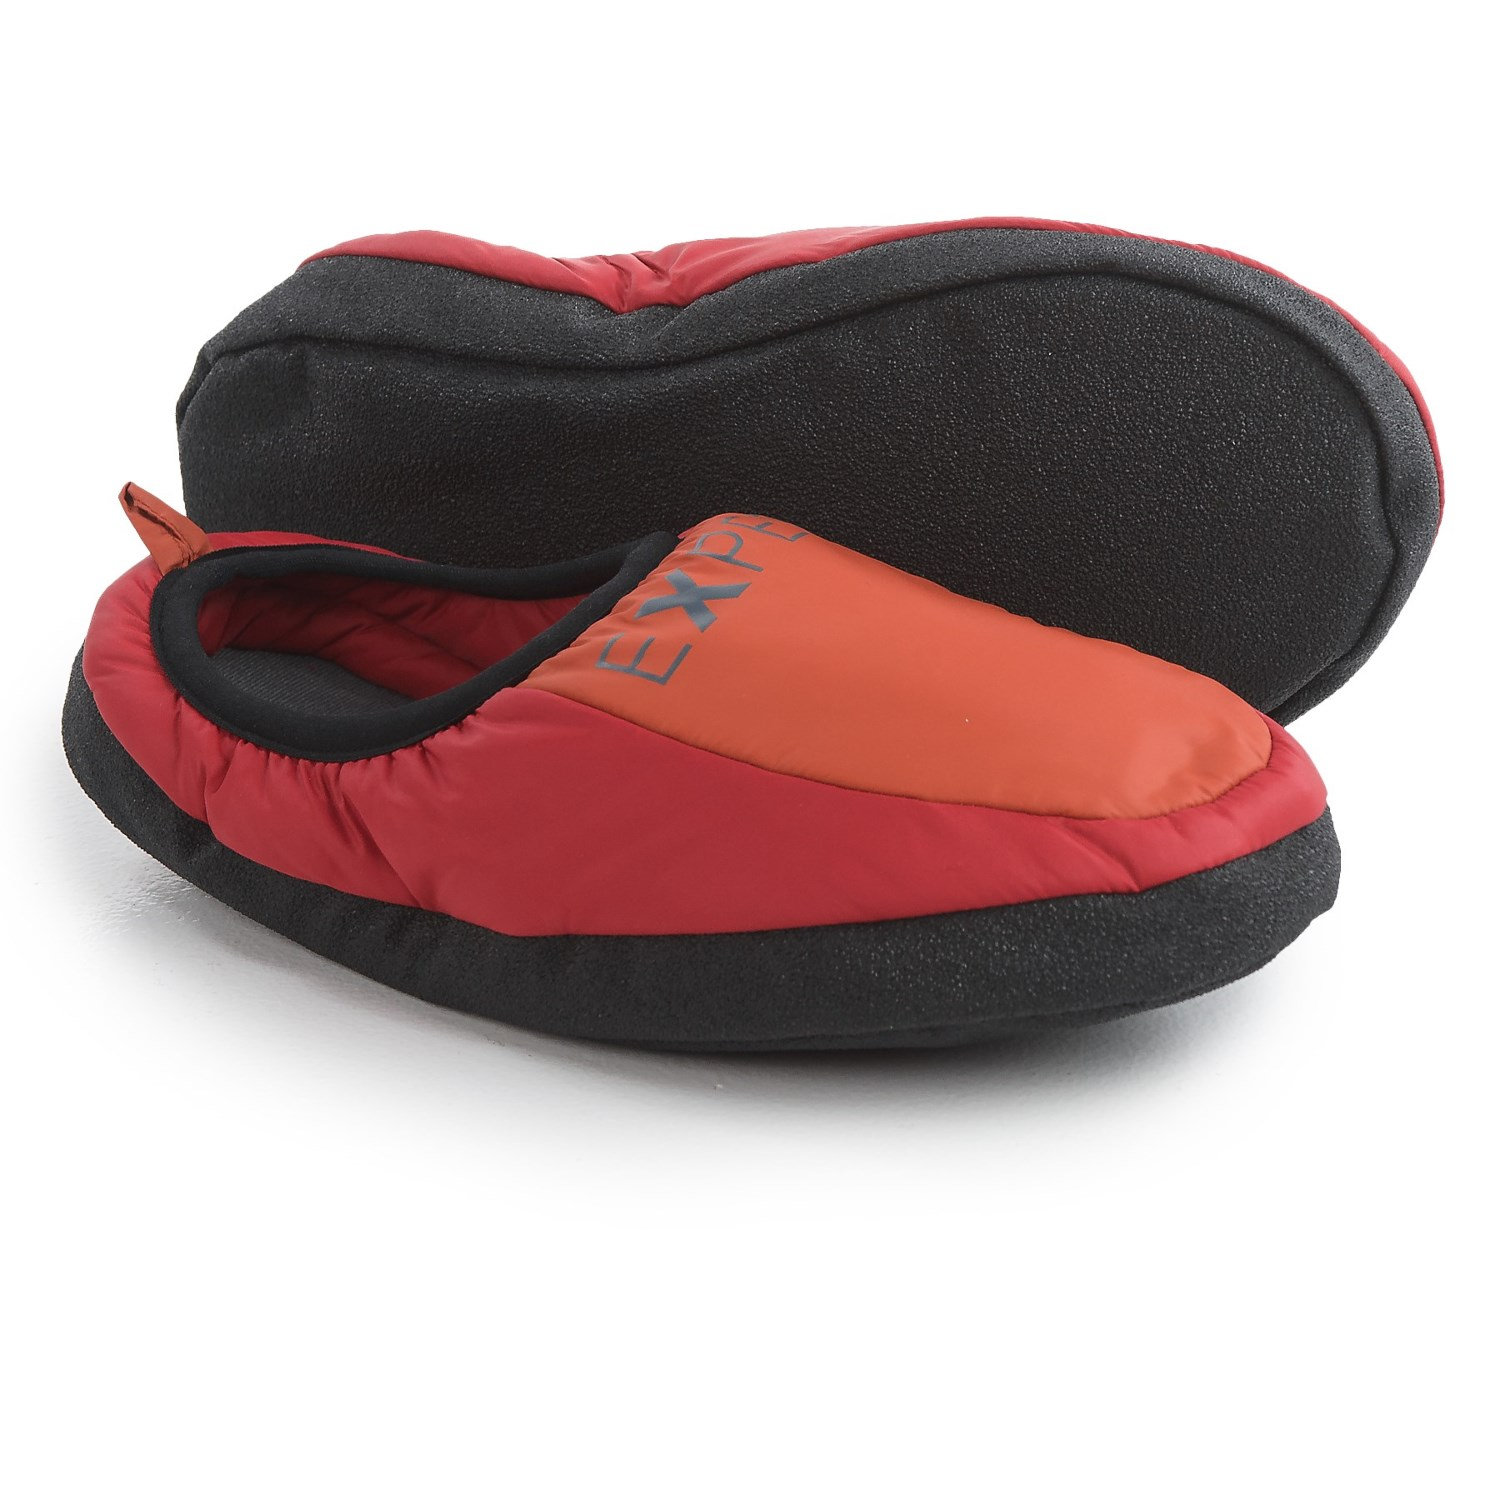 Bedroom Athletics Mens Slipper Boots